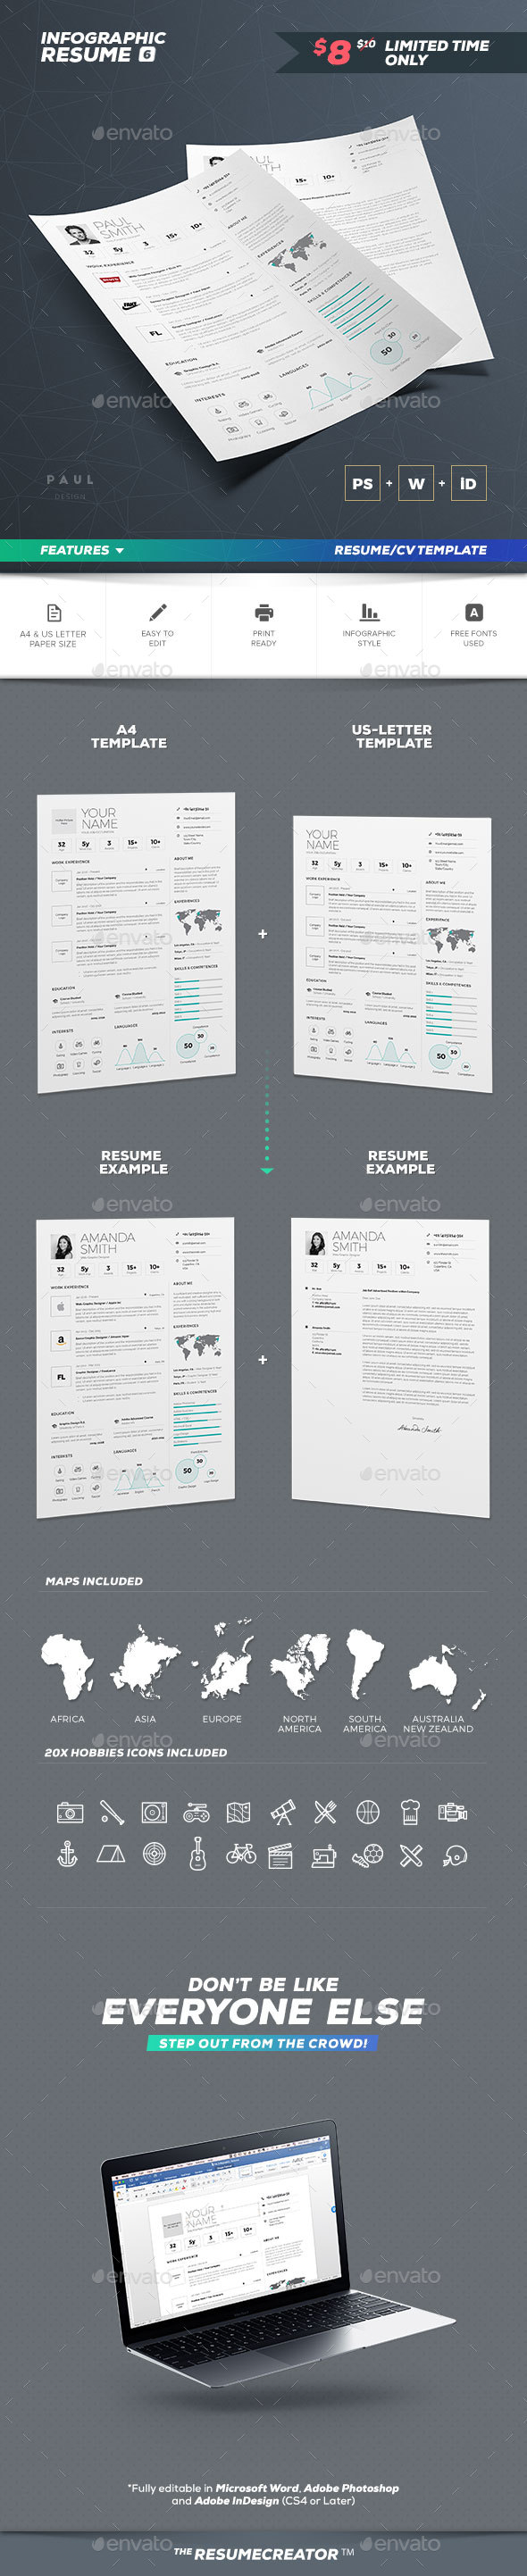 Infographic Resume/Cv Volume 6 - Resumes Stationery